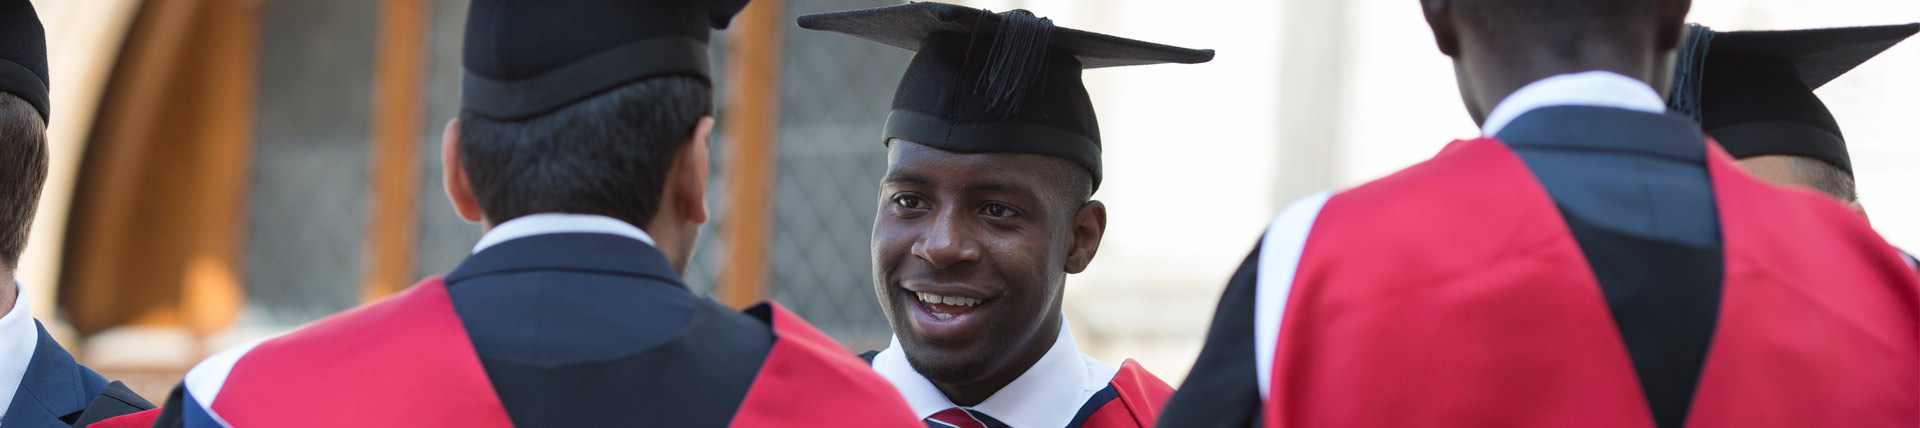 Man wearing a graduation hat and gown